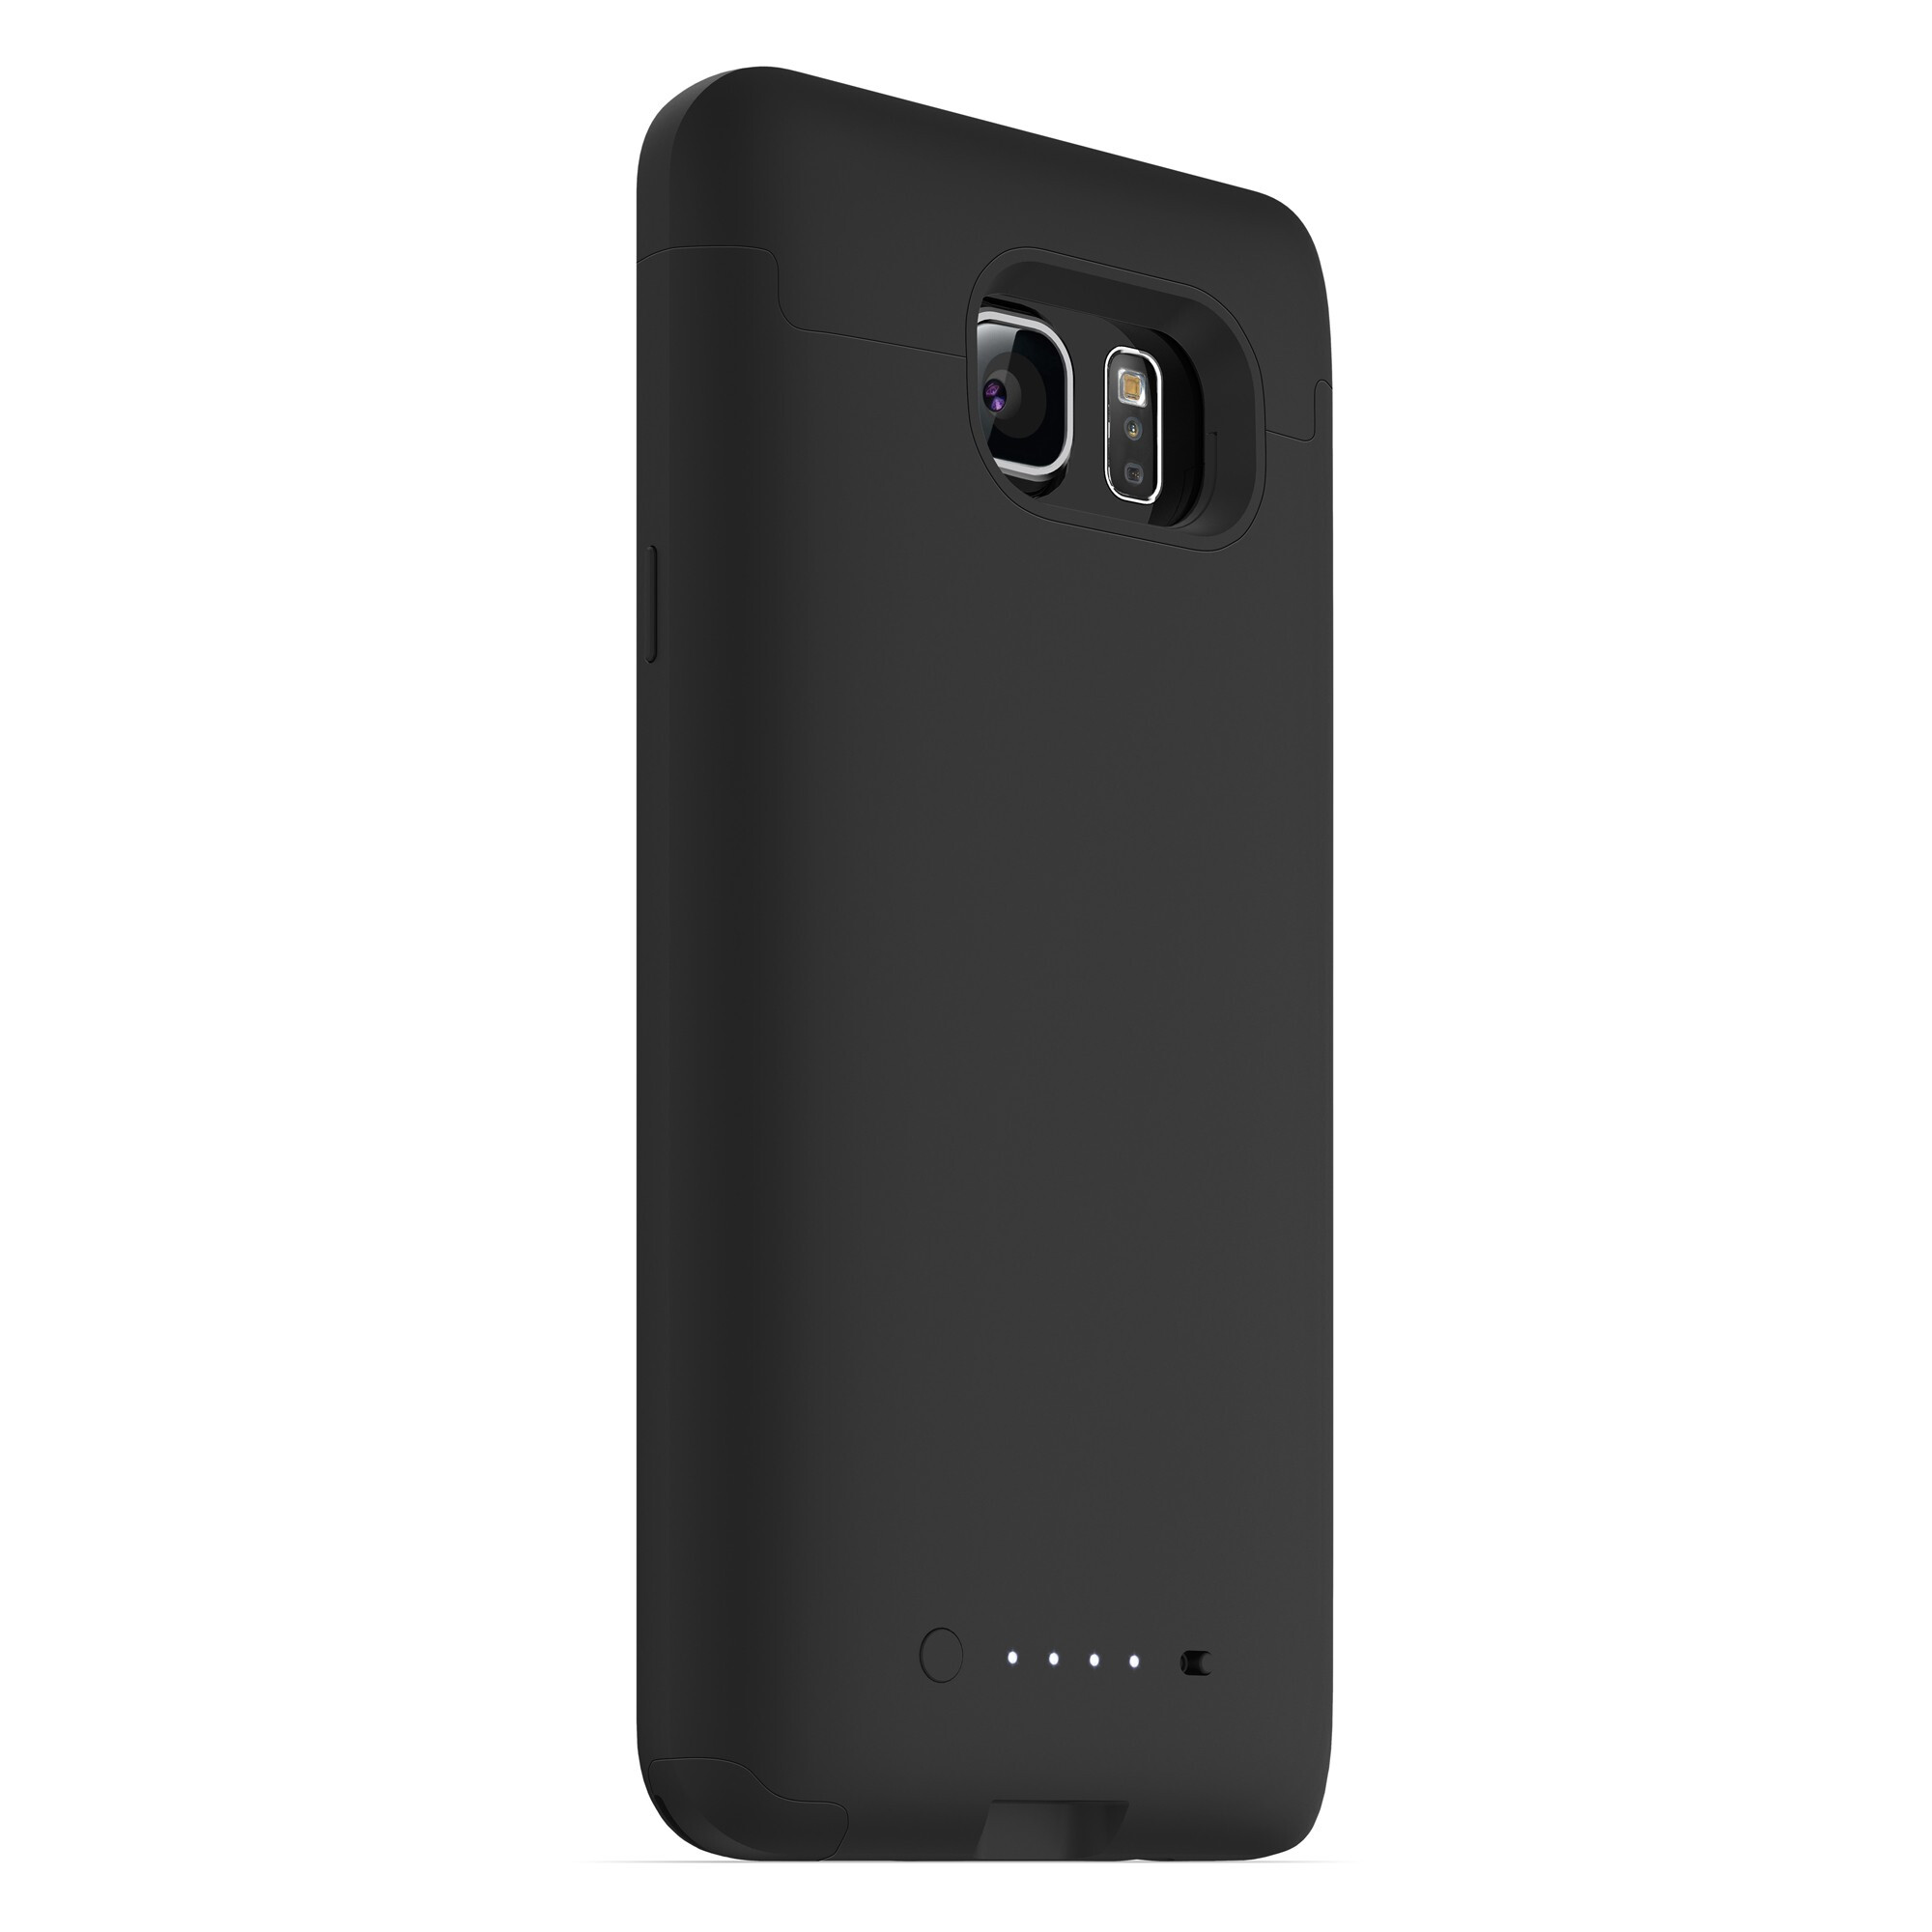 Mophie's new battery case for the Galaxy Note5 provides ...